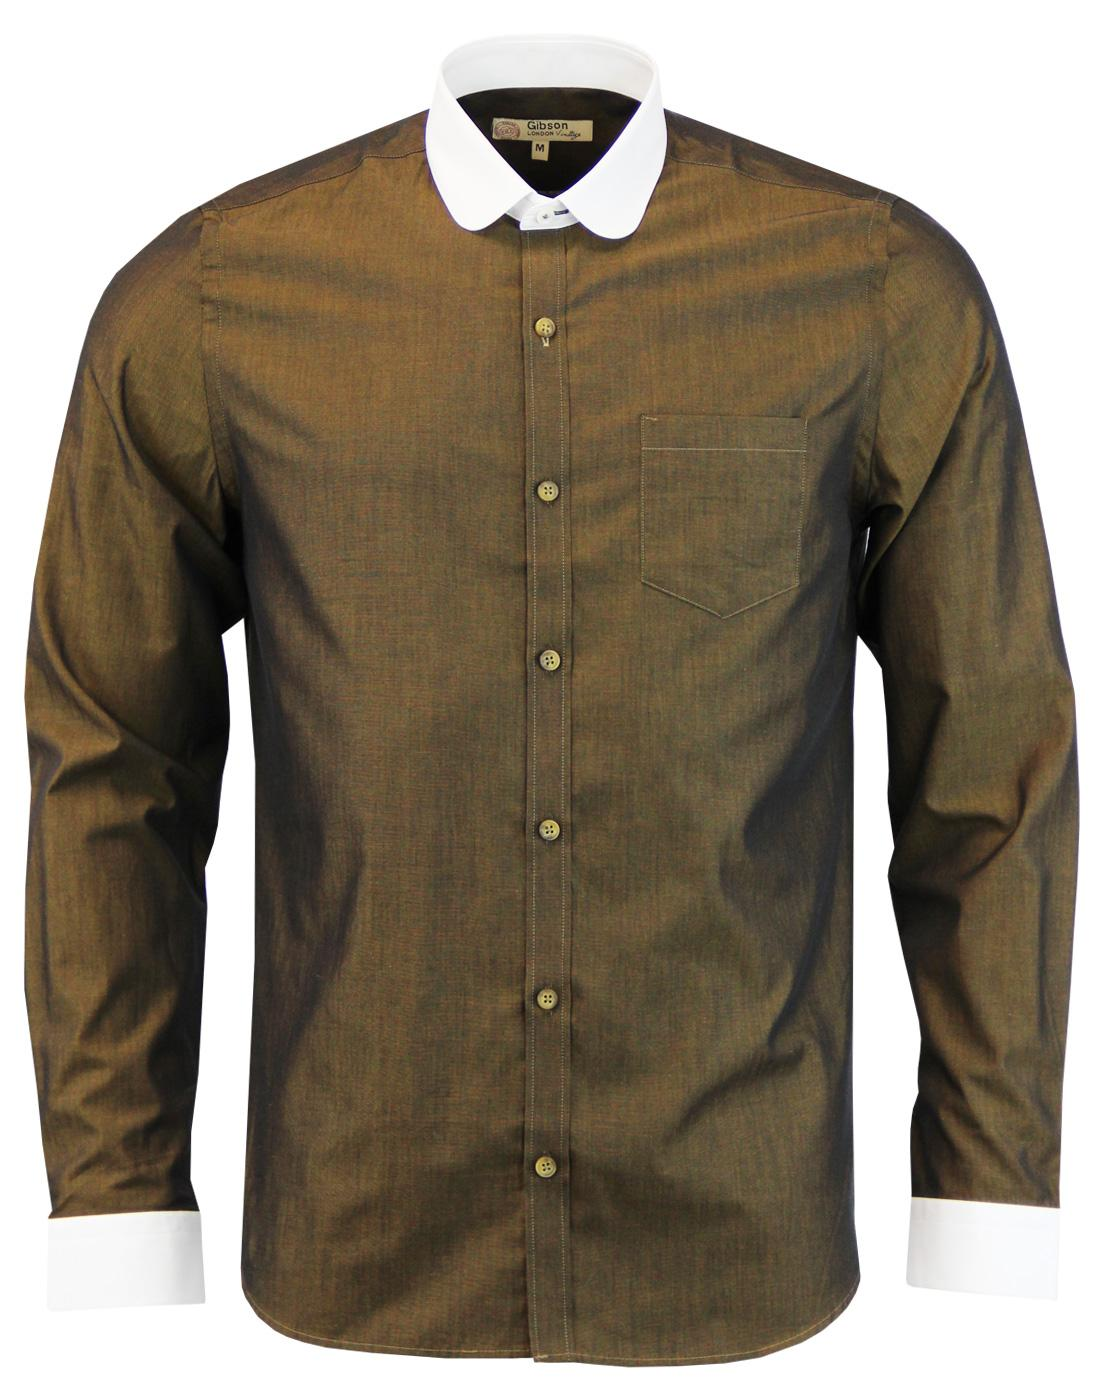 GIBSON LONDON 60s Mod Penny Round Collar Shirt (O)